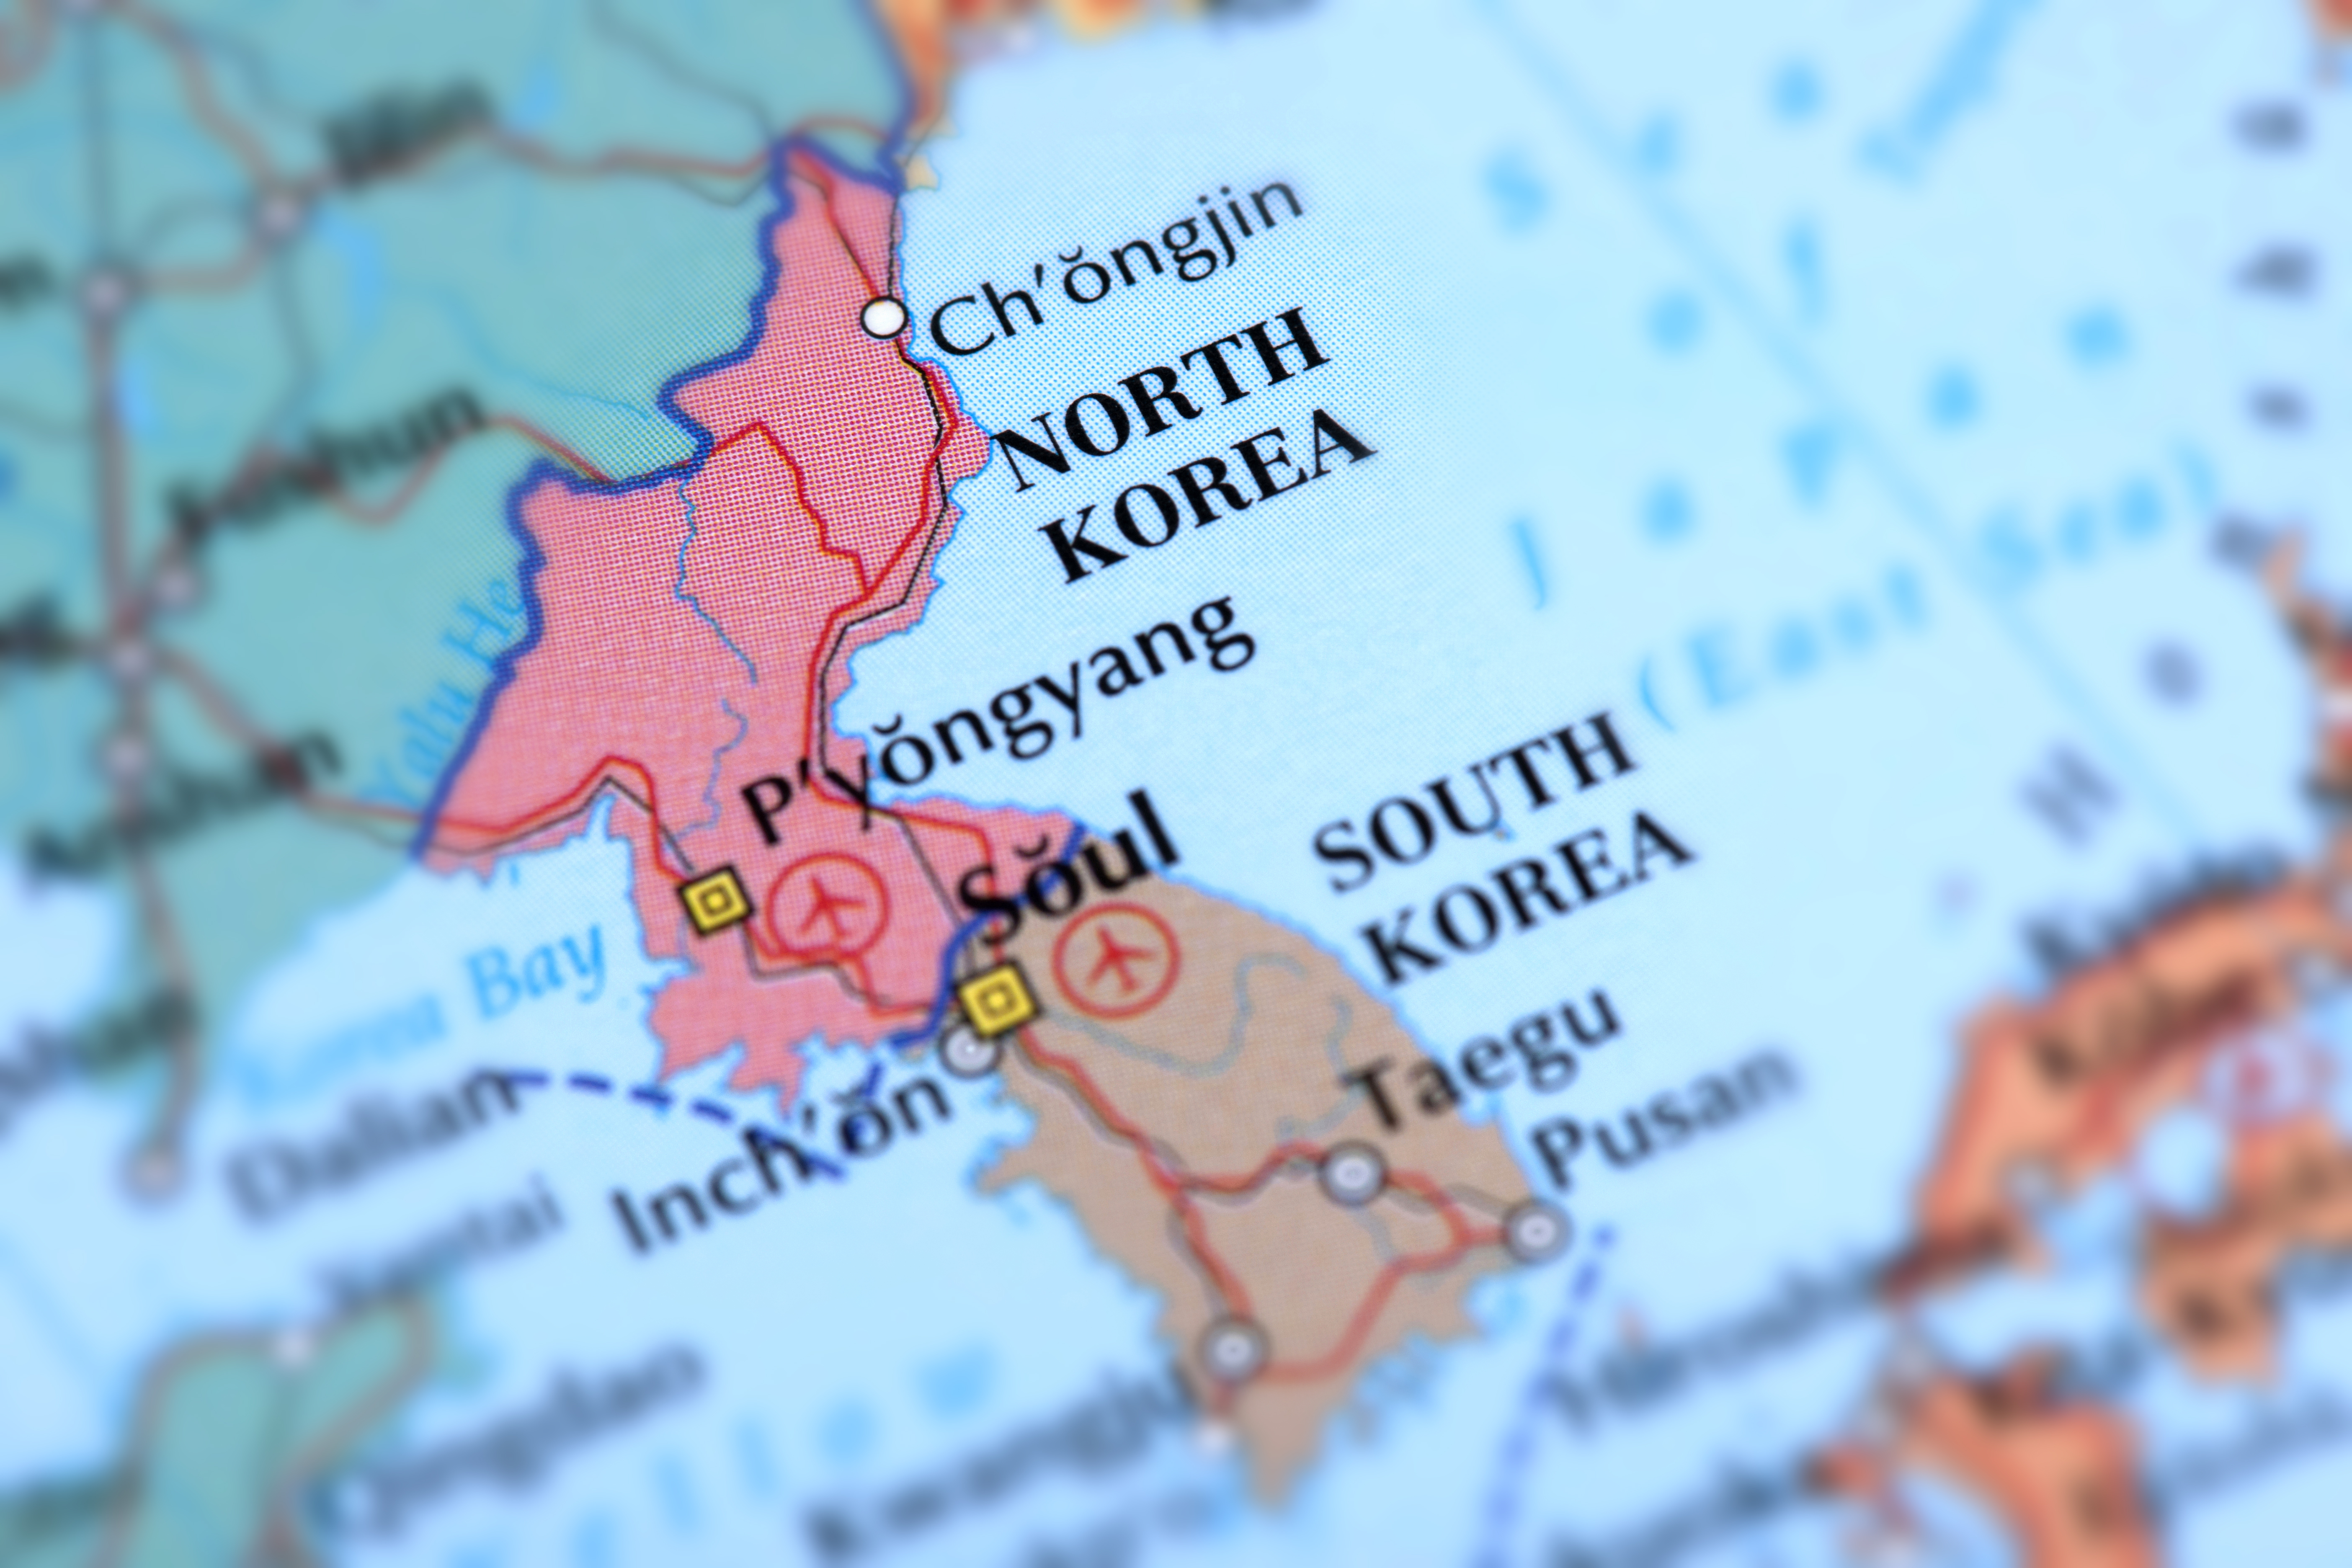 The Secret Group Trying to Topple North Korea's Regime